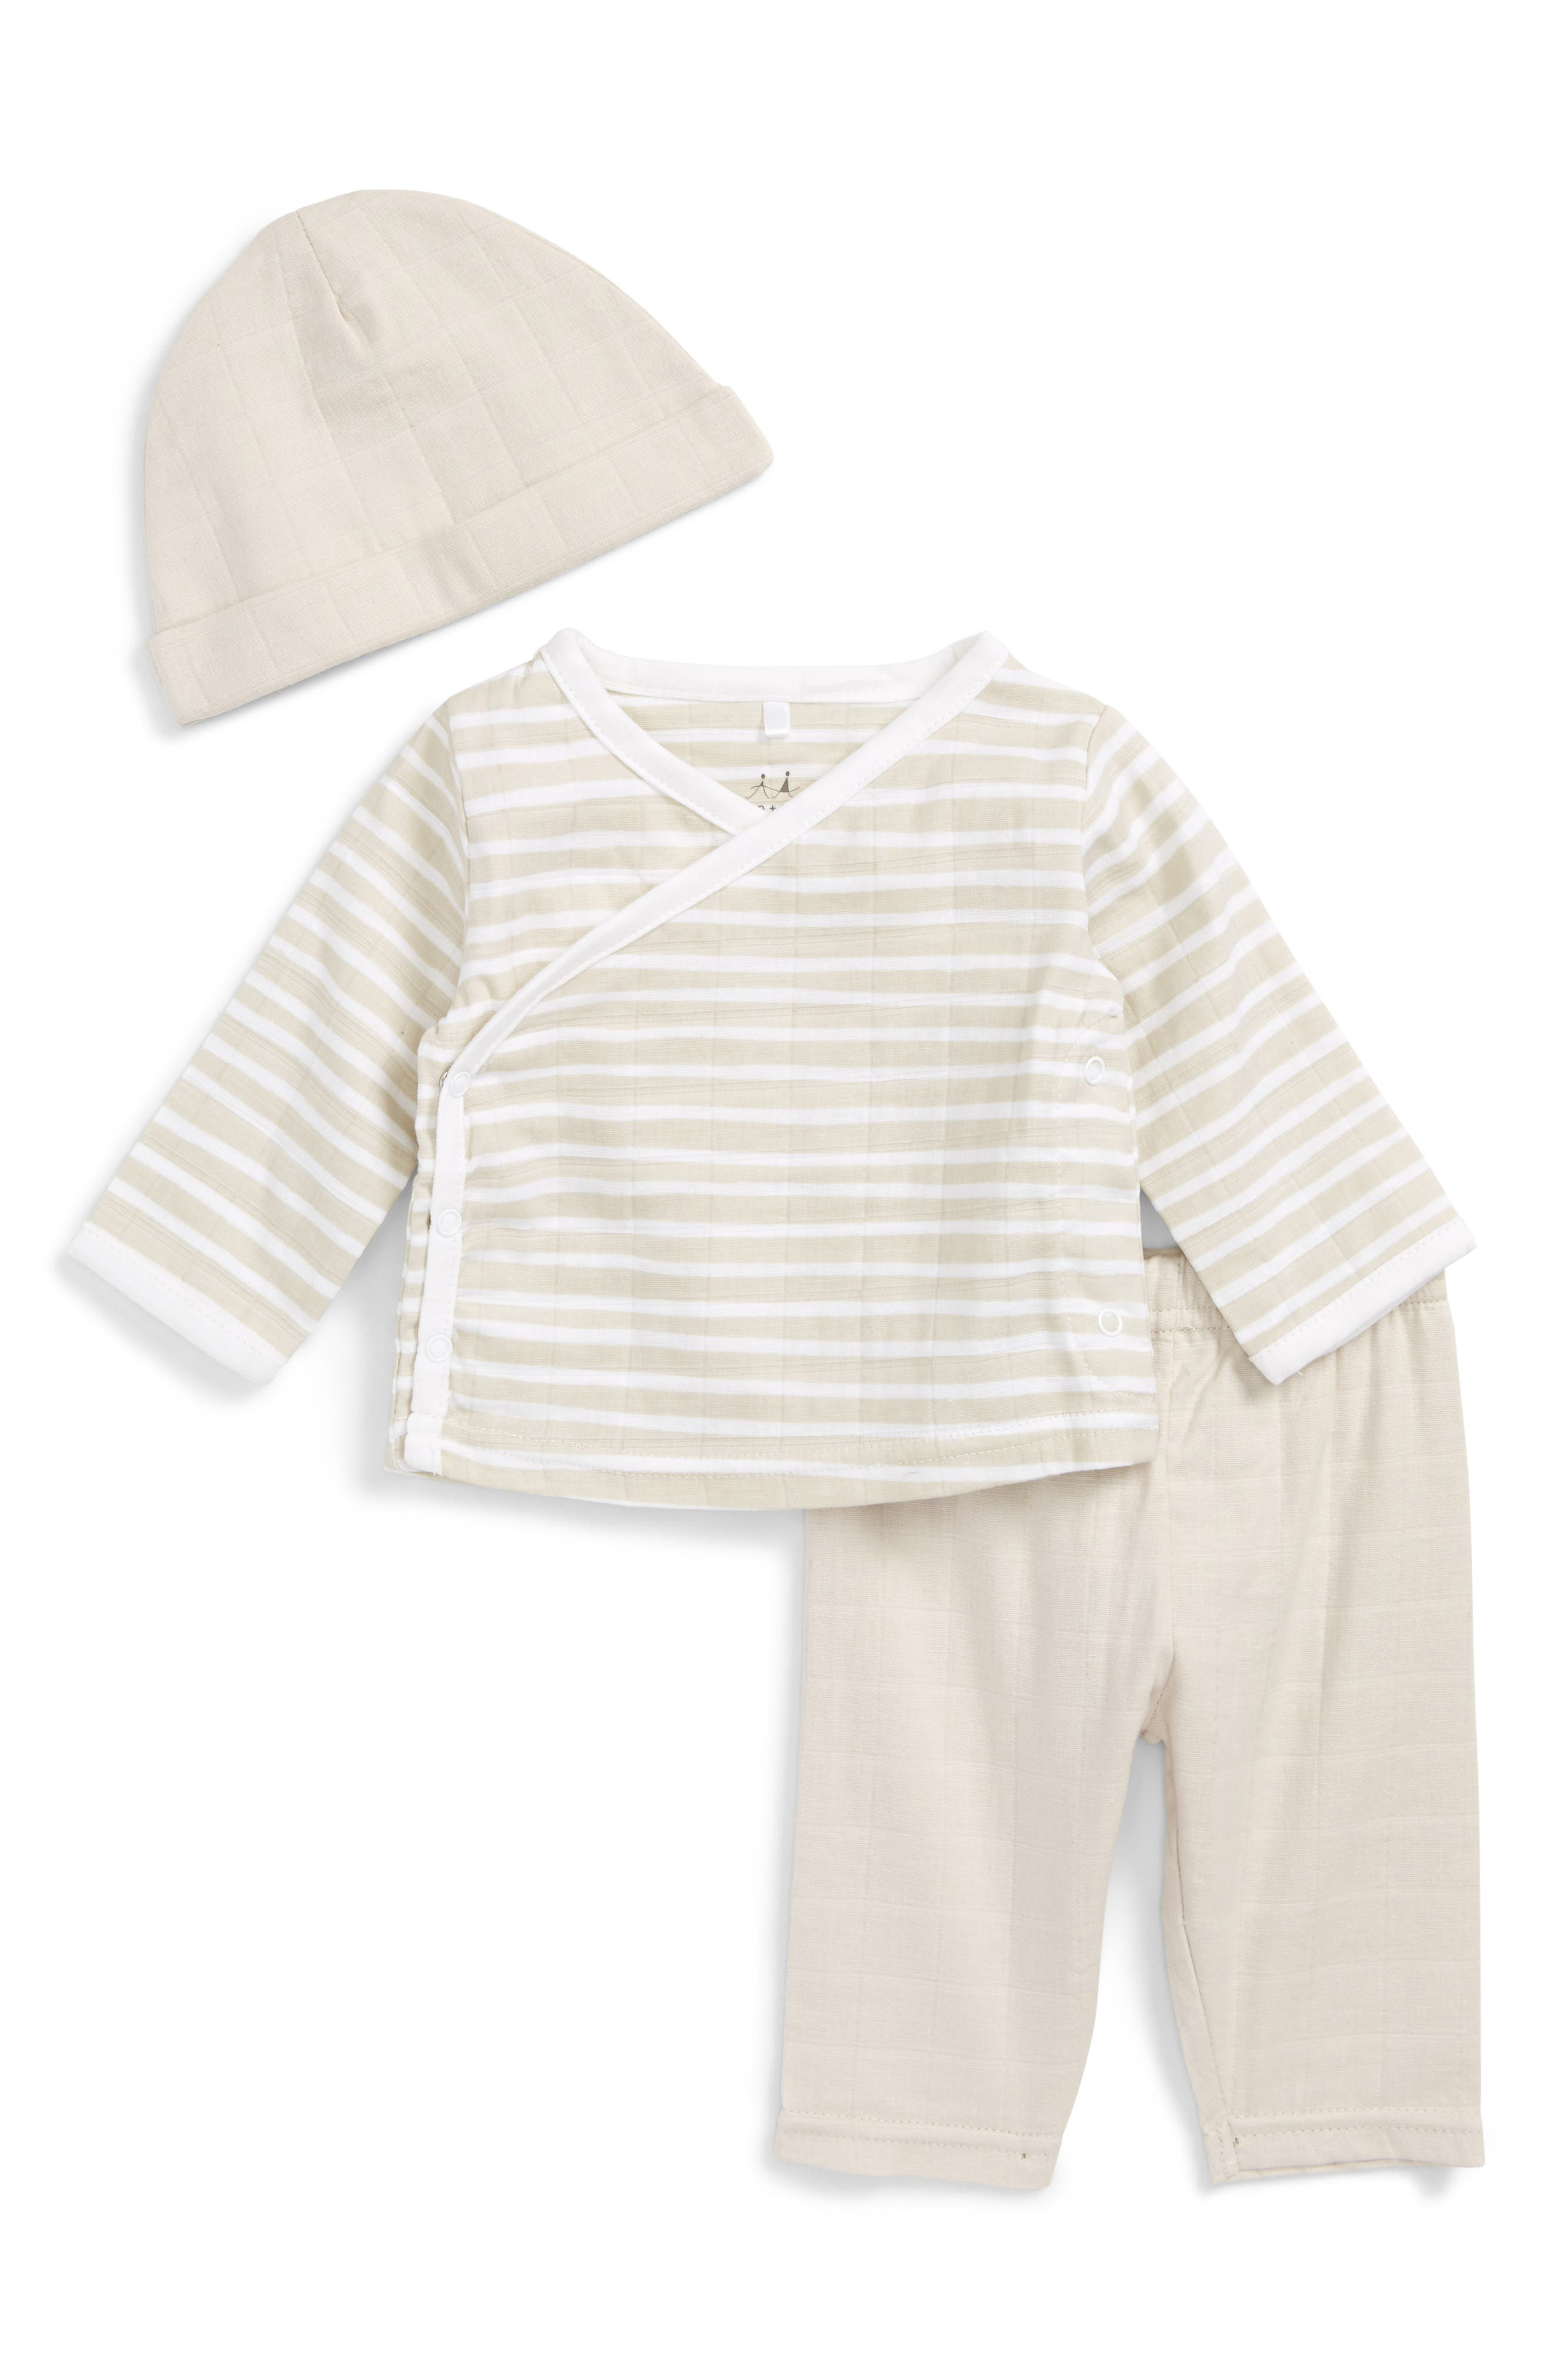 Alternate Image 1 Selected - aden + anais Quilted Shirt, Pants & Beanie Set (Baby)